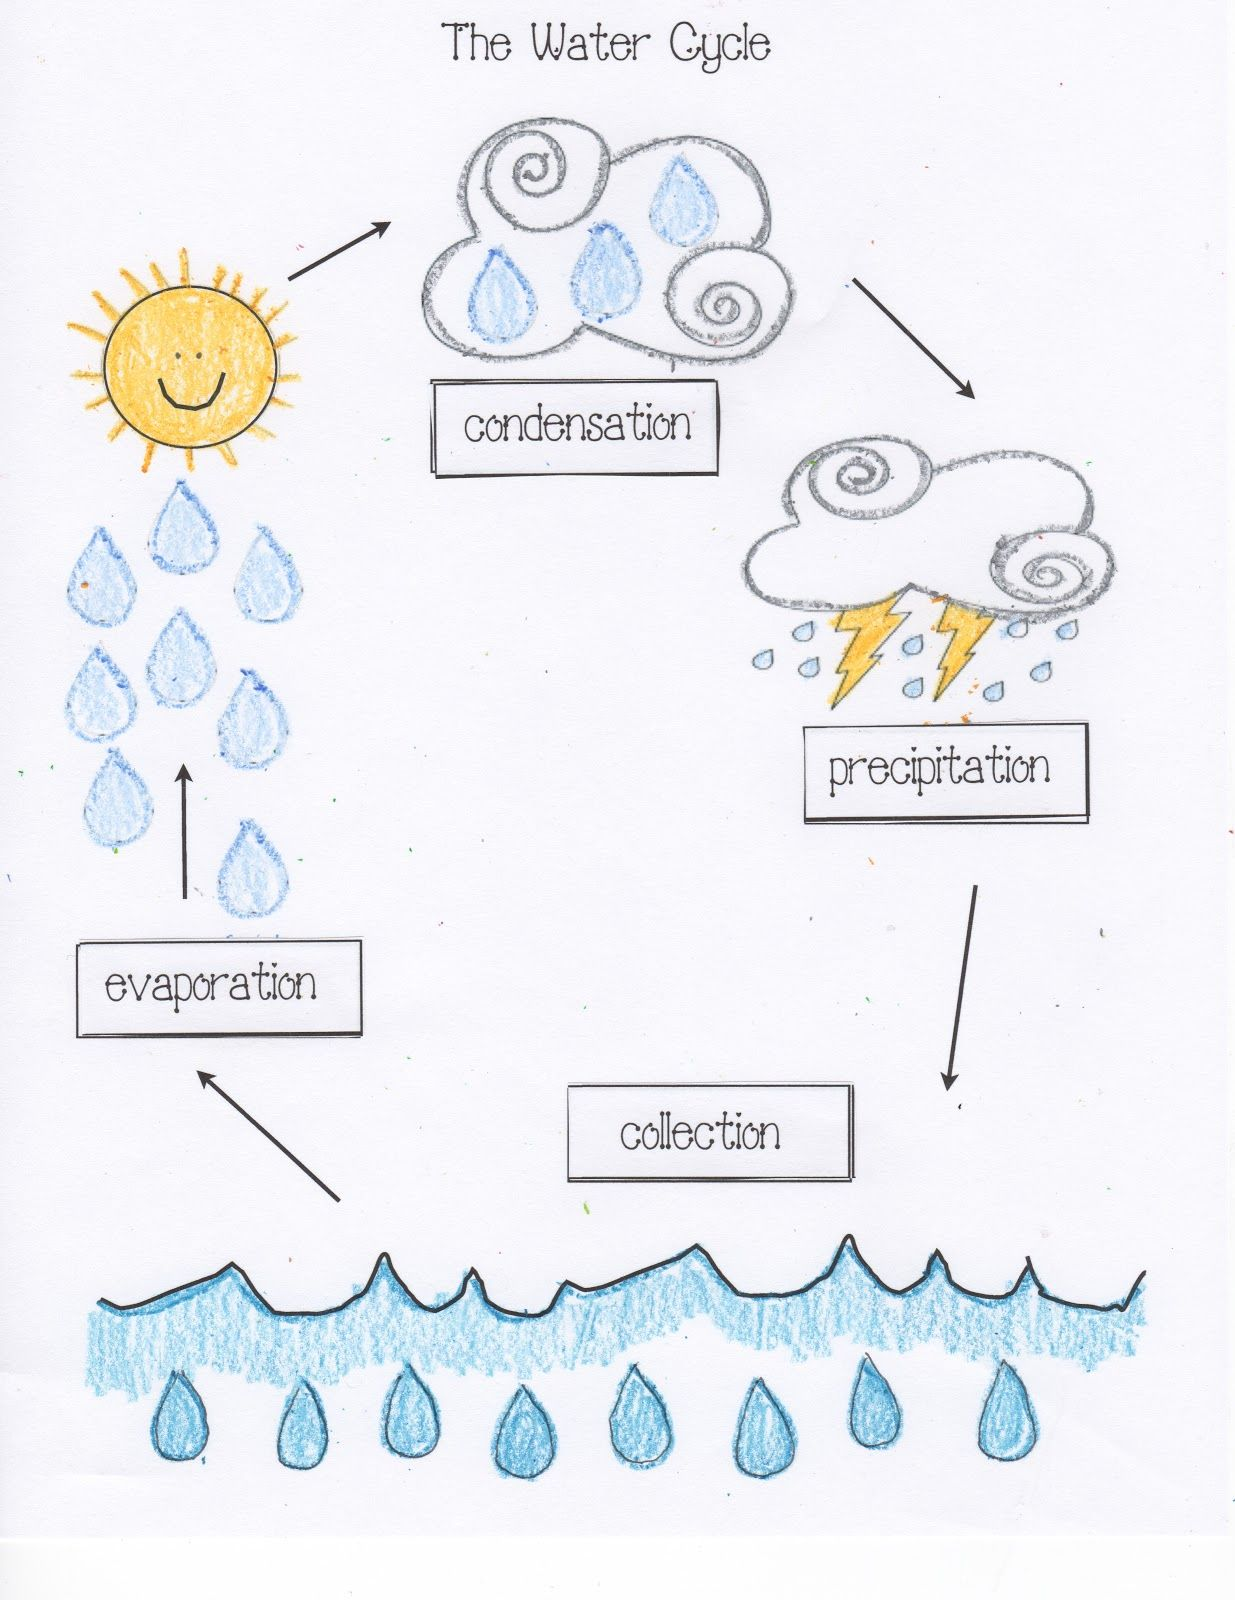 water cycle activities | kids science | pinterest | water cycle